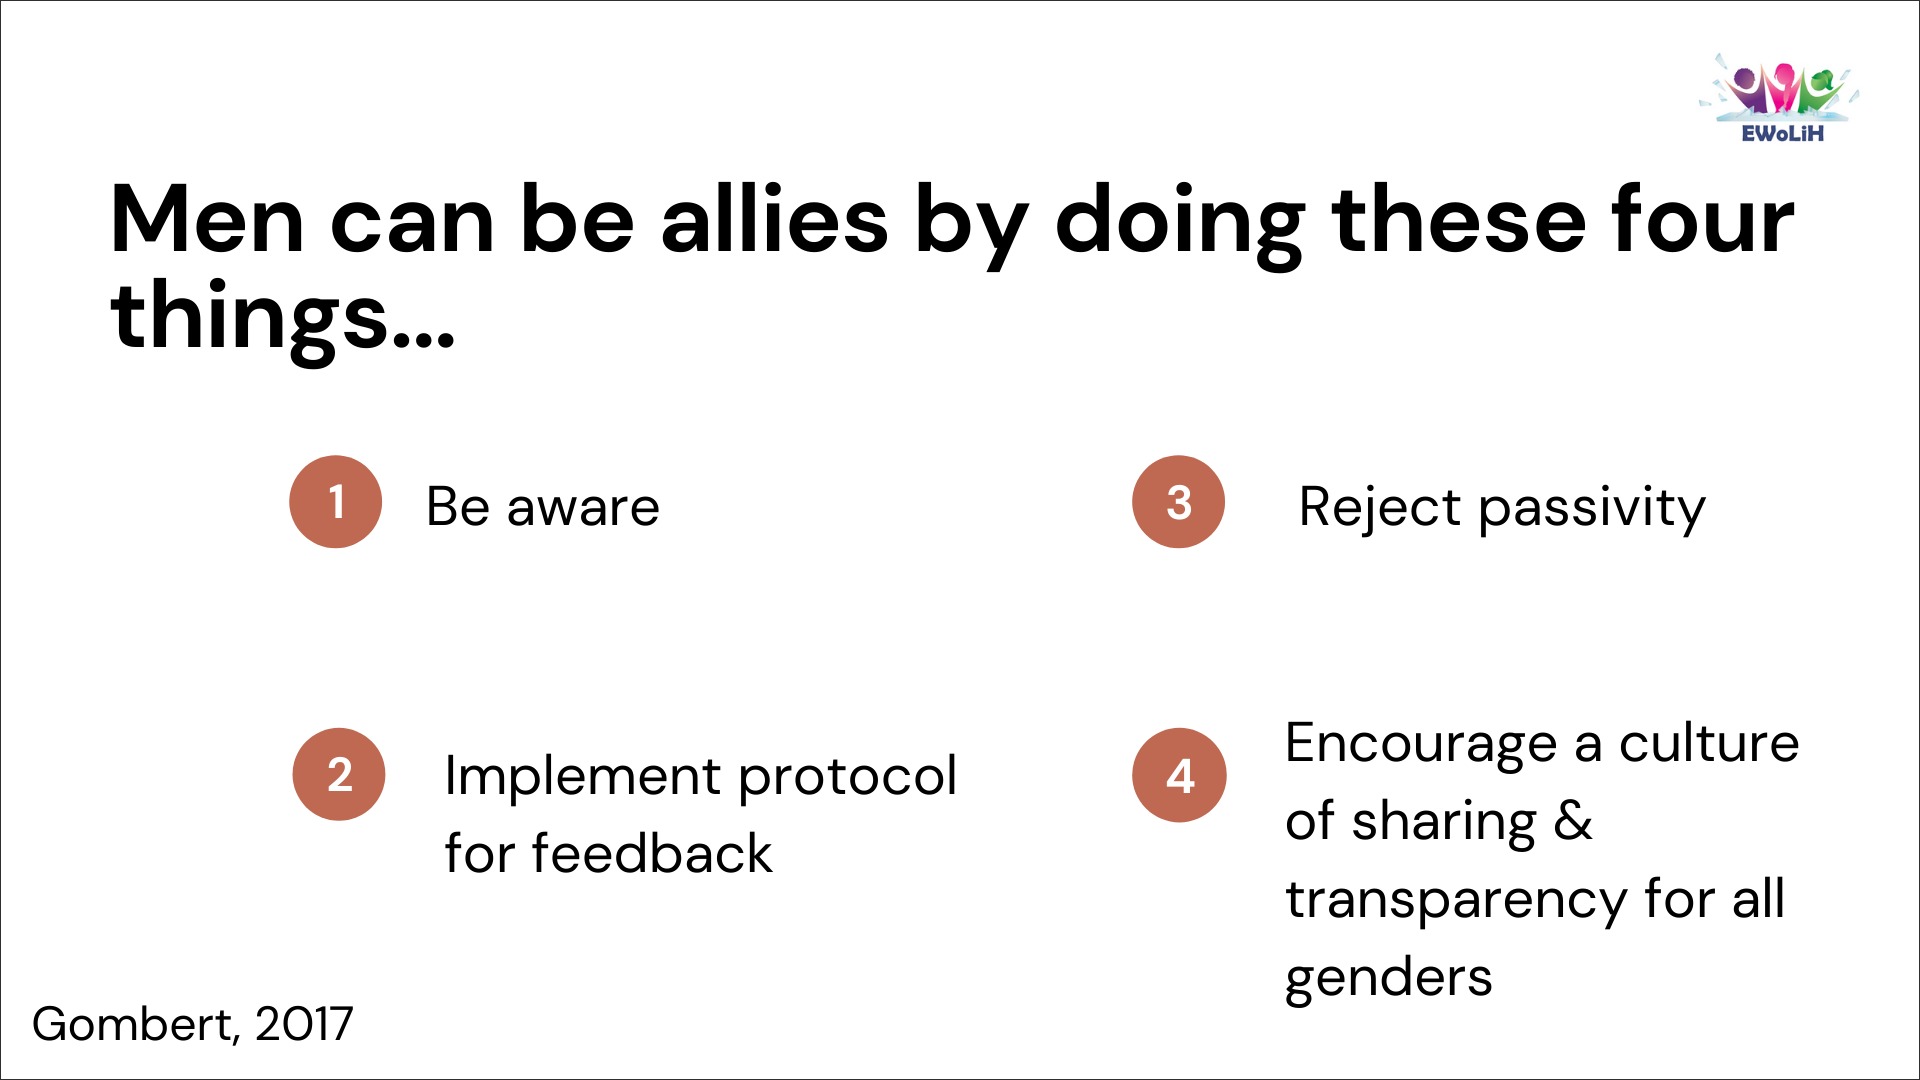 The image has a white background and has the following title in black bold letters: Men can be Allies by Doing These 4 Things. The rest of the text lists in point form: 1. Be aware, 2. Implement protocol for feedback, 3. Reject passivity, 4. Encourage a culture of sharing & transparency for all genders. In the bottom left corner, the image cites Gombert, 2017.